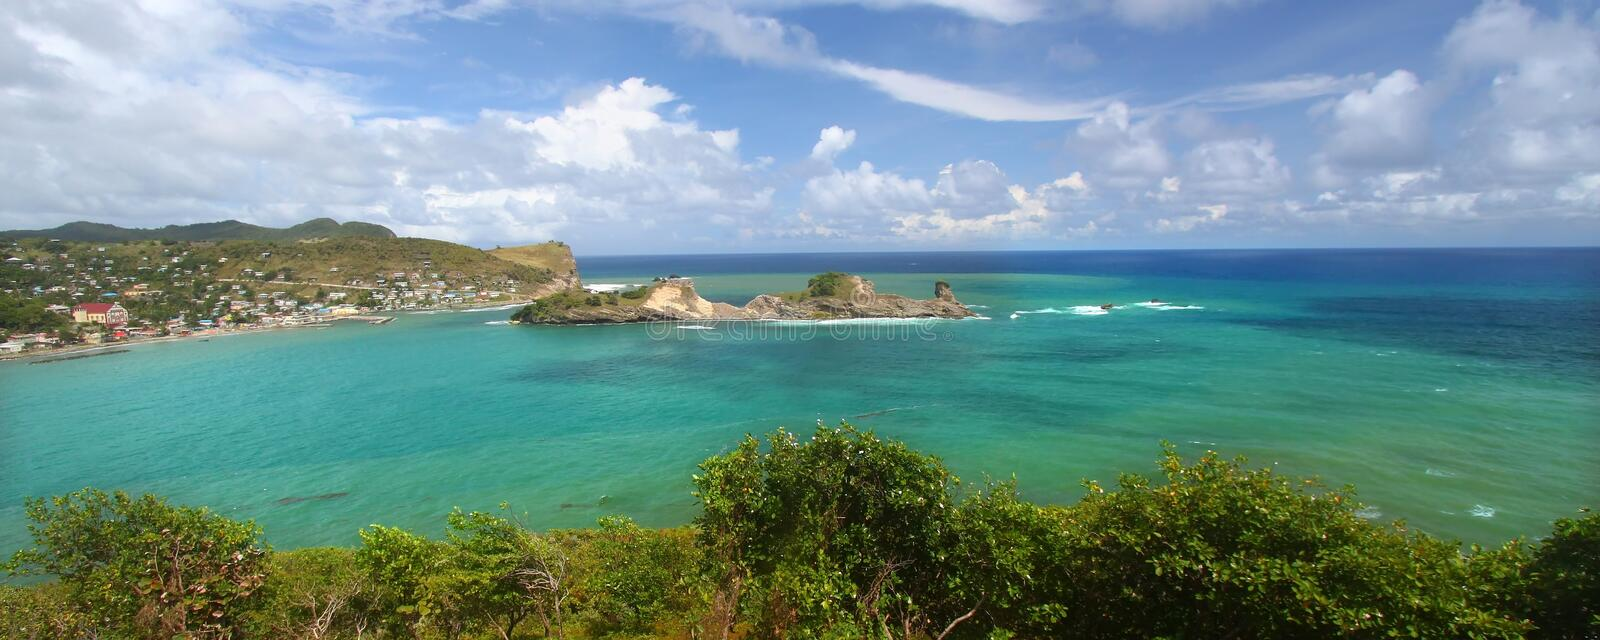 Download Dennery Bay - Saint Lucia stock image. Image of cloud - 15981379